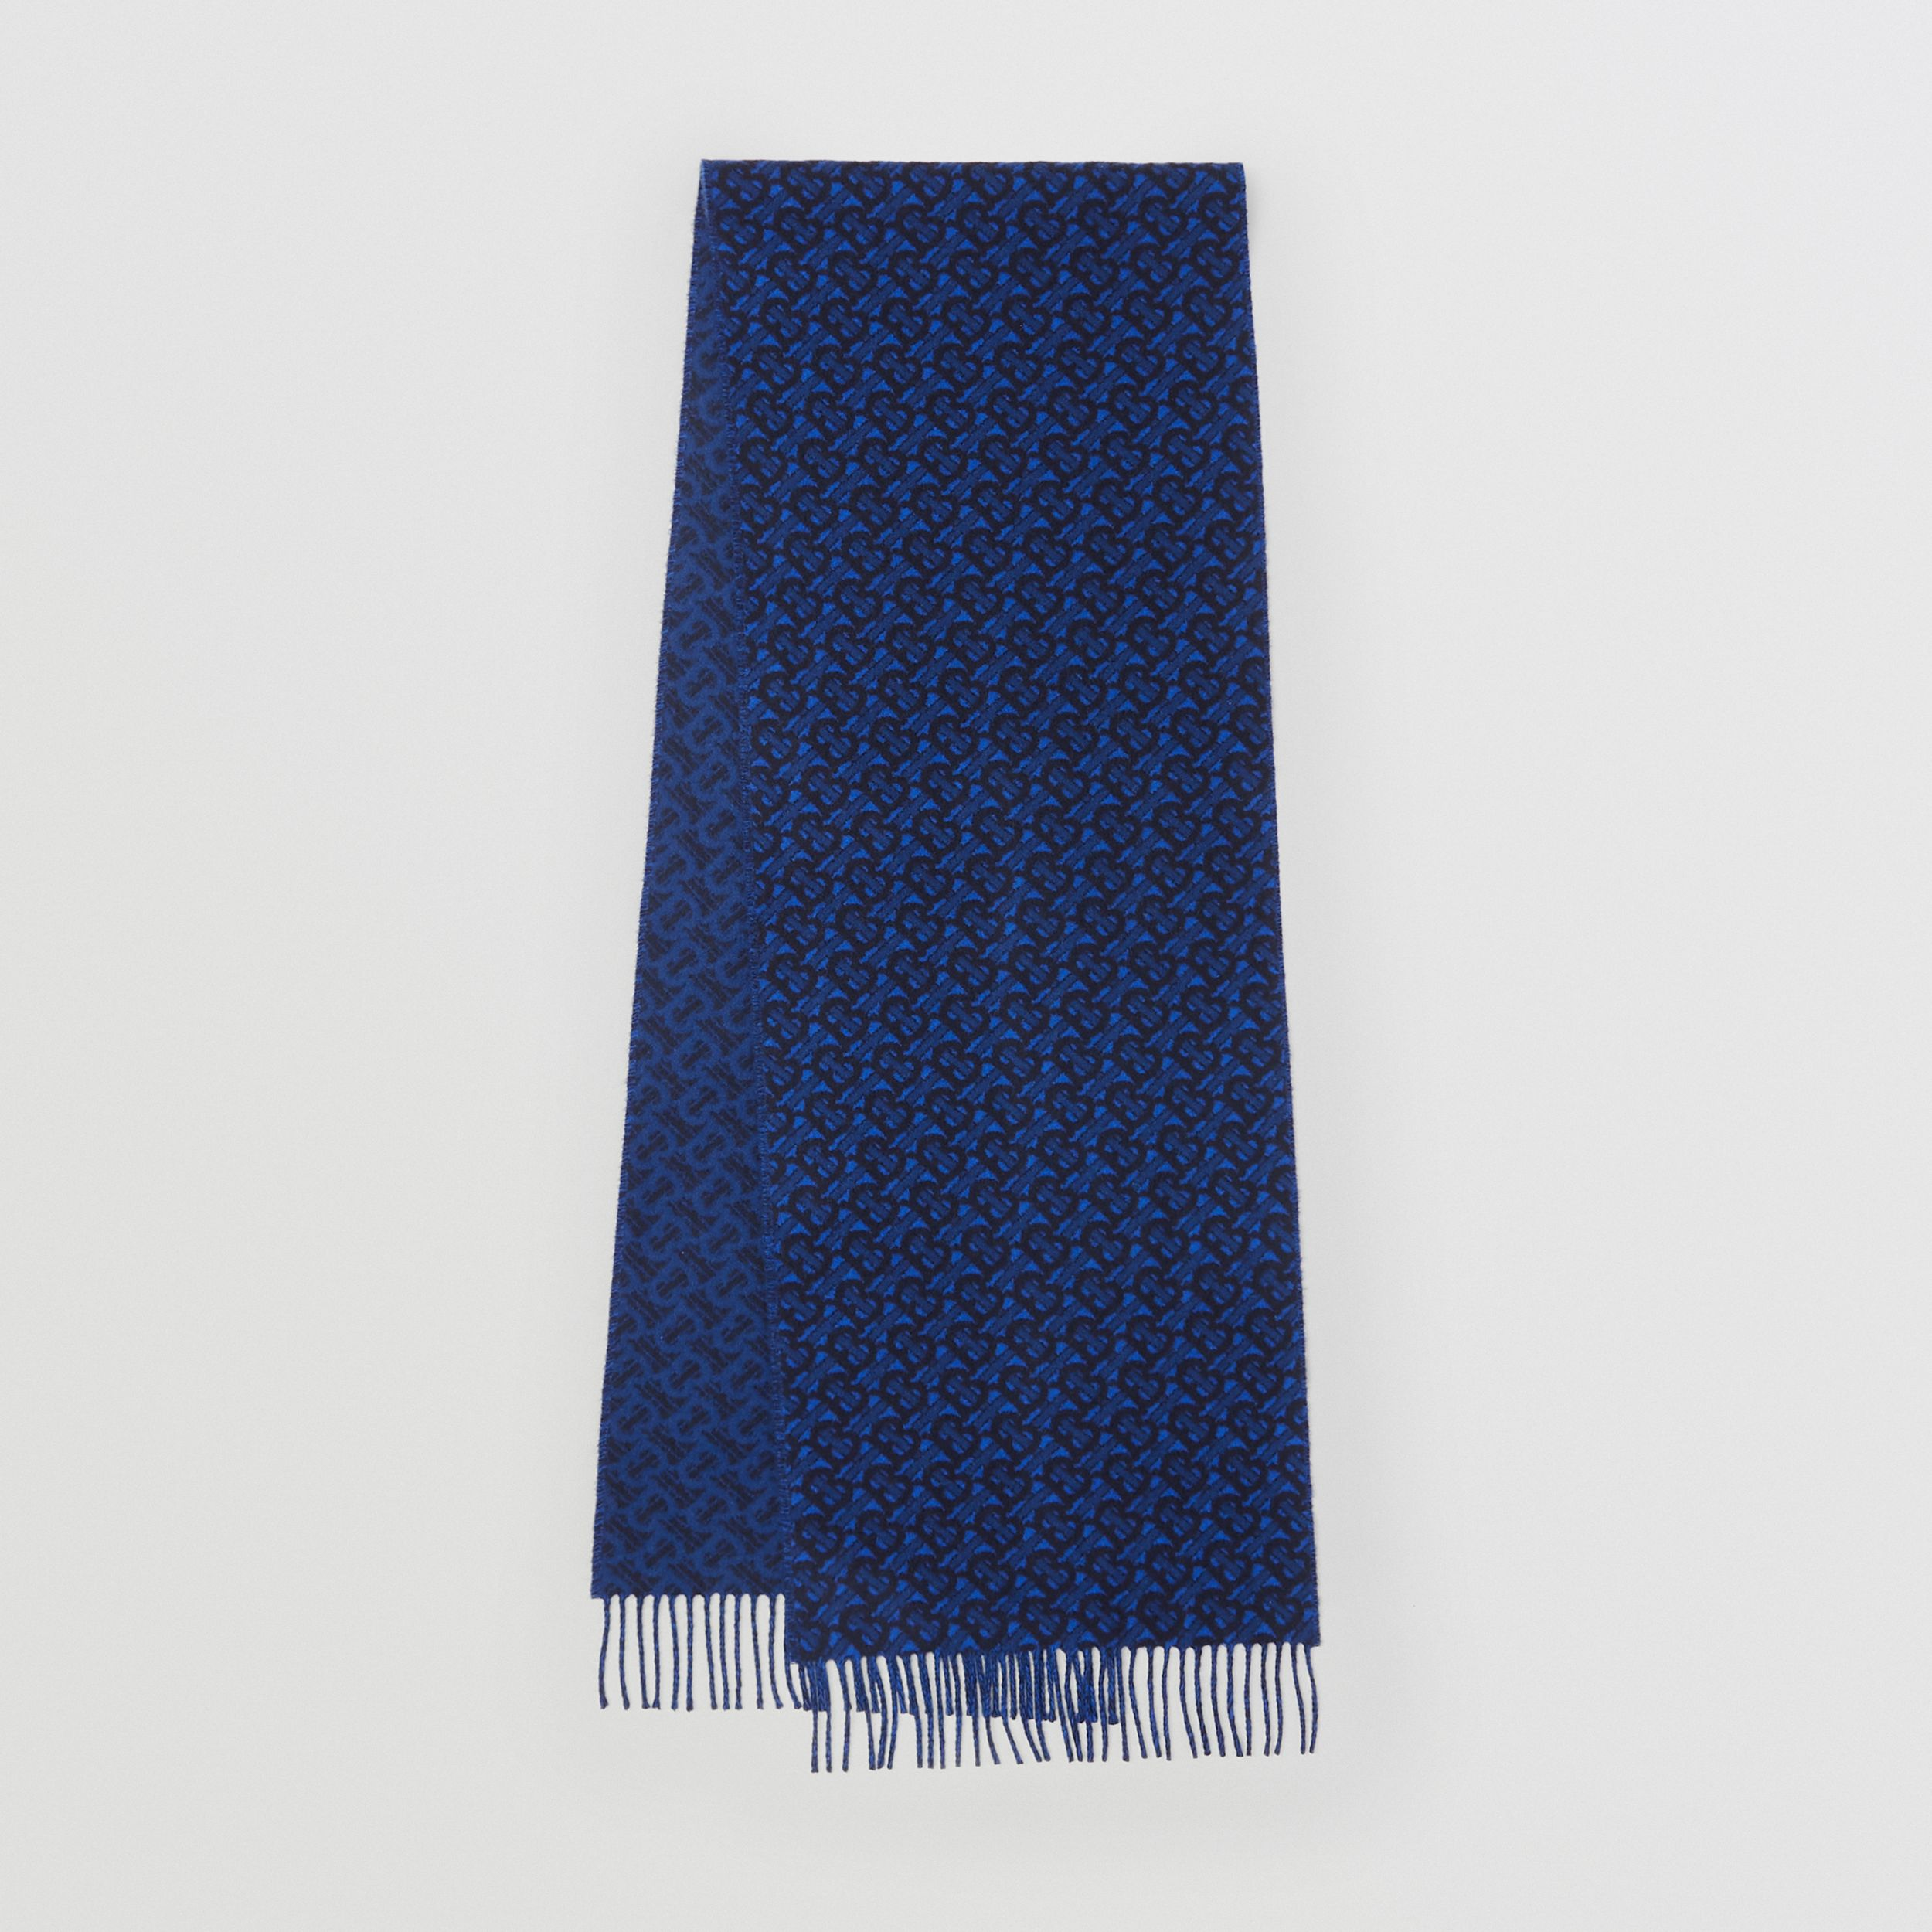 Monogram Cashmere Jacquard Scarf in Azure Blue | Burberry - 1